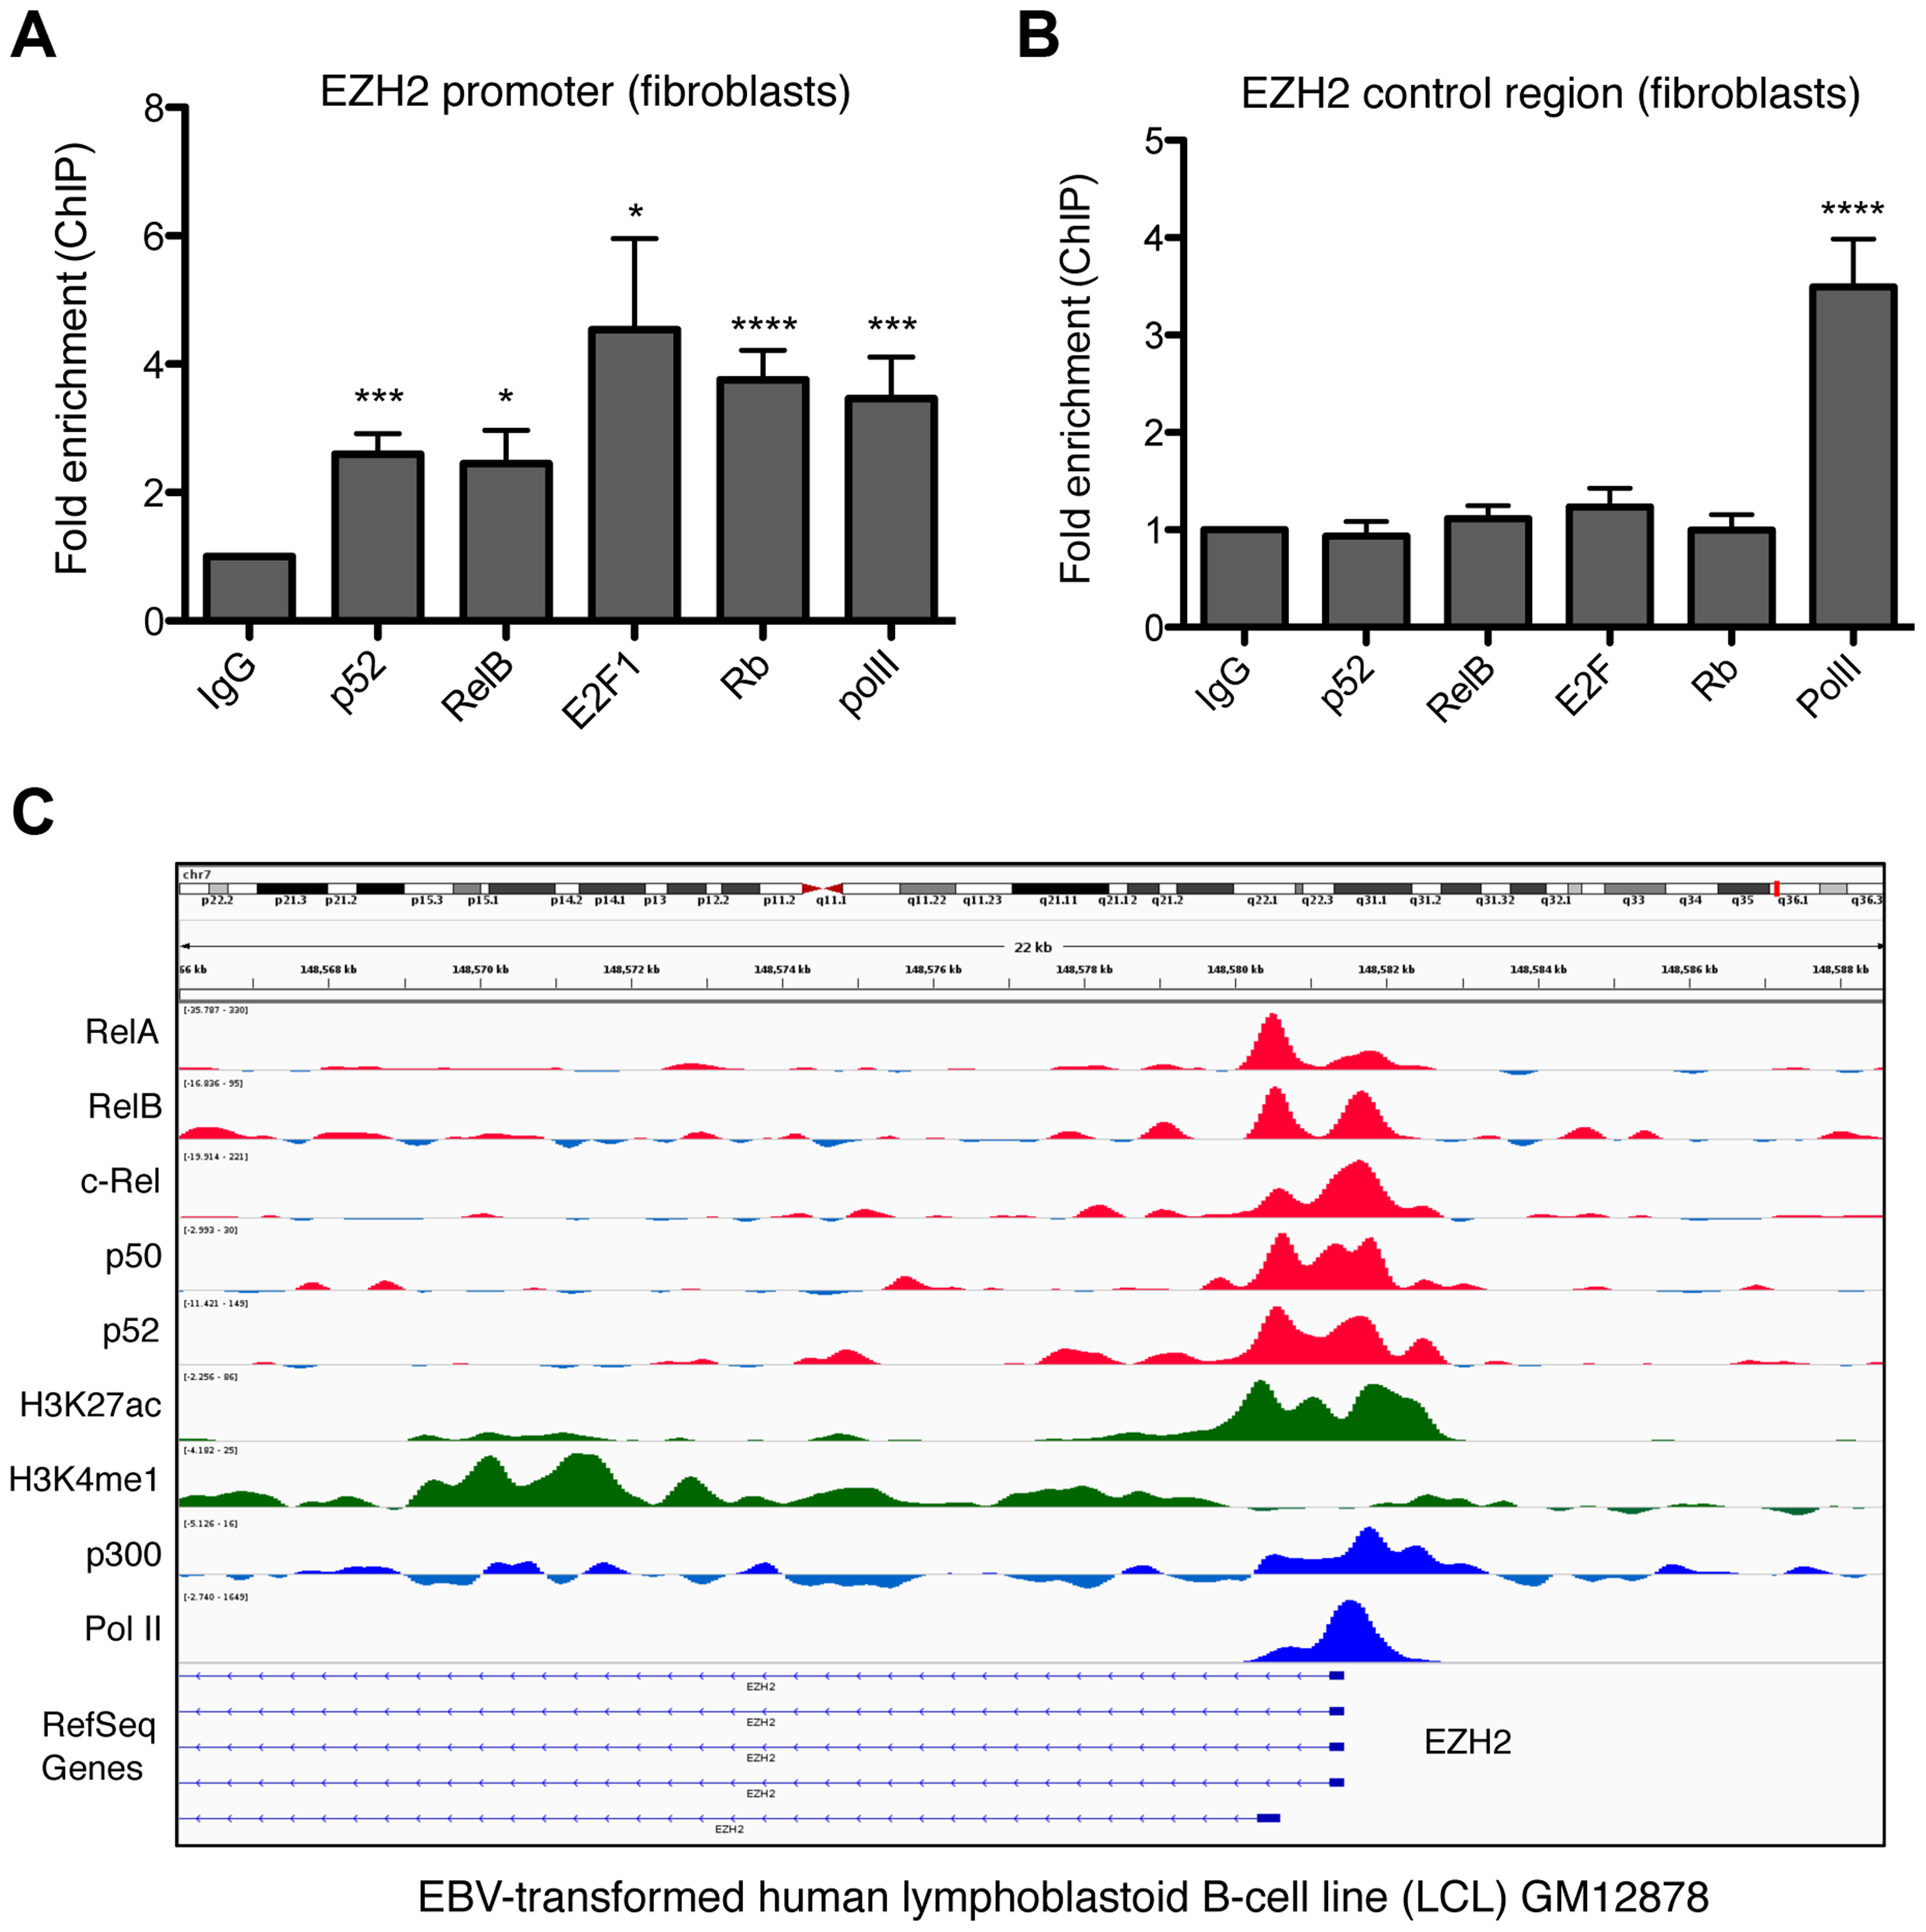 NF-κB subunits bind the EZH2 promoter in fibroblasts and B-cells.